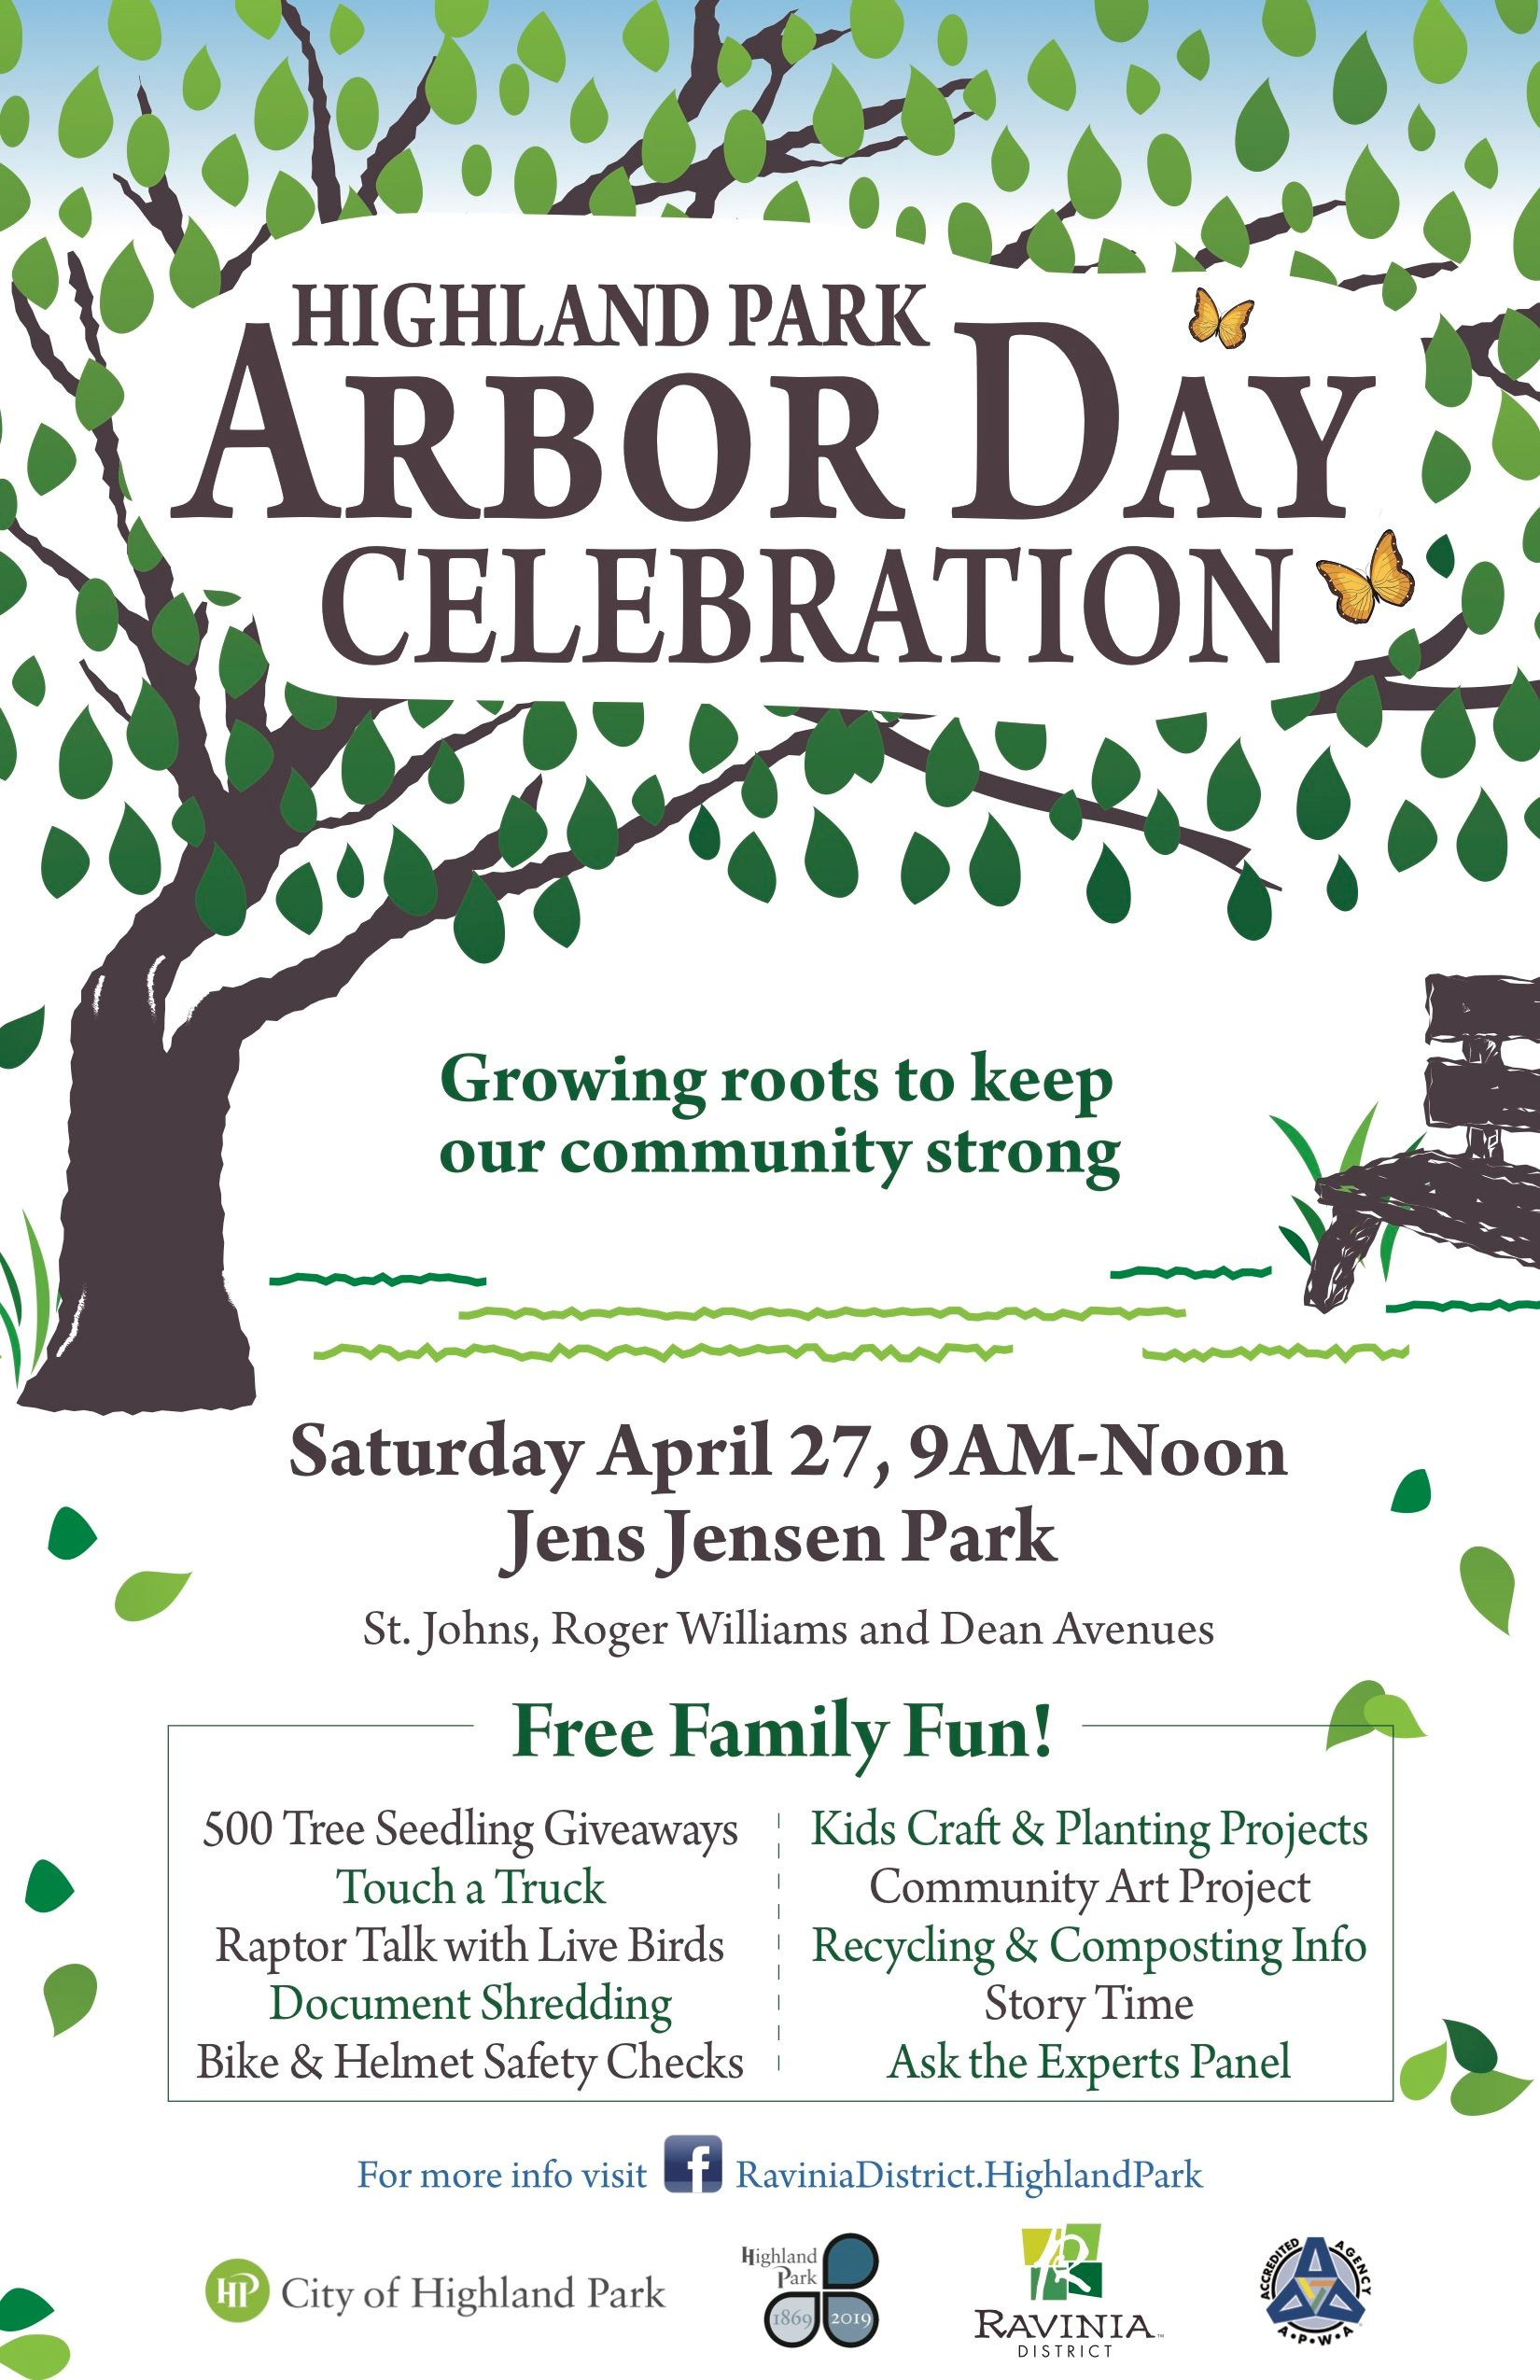 HP Arbor Day 2019 11 x 17 Poster FINAL copy